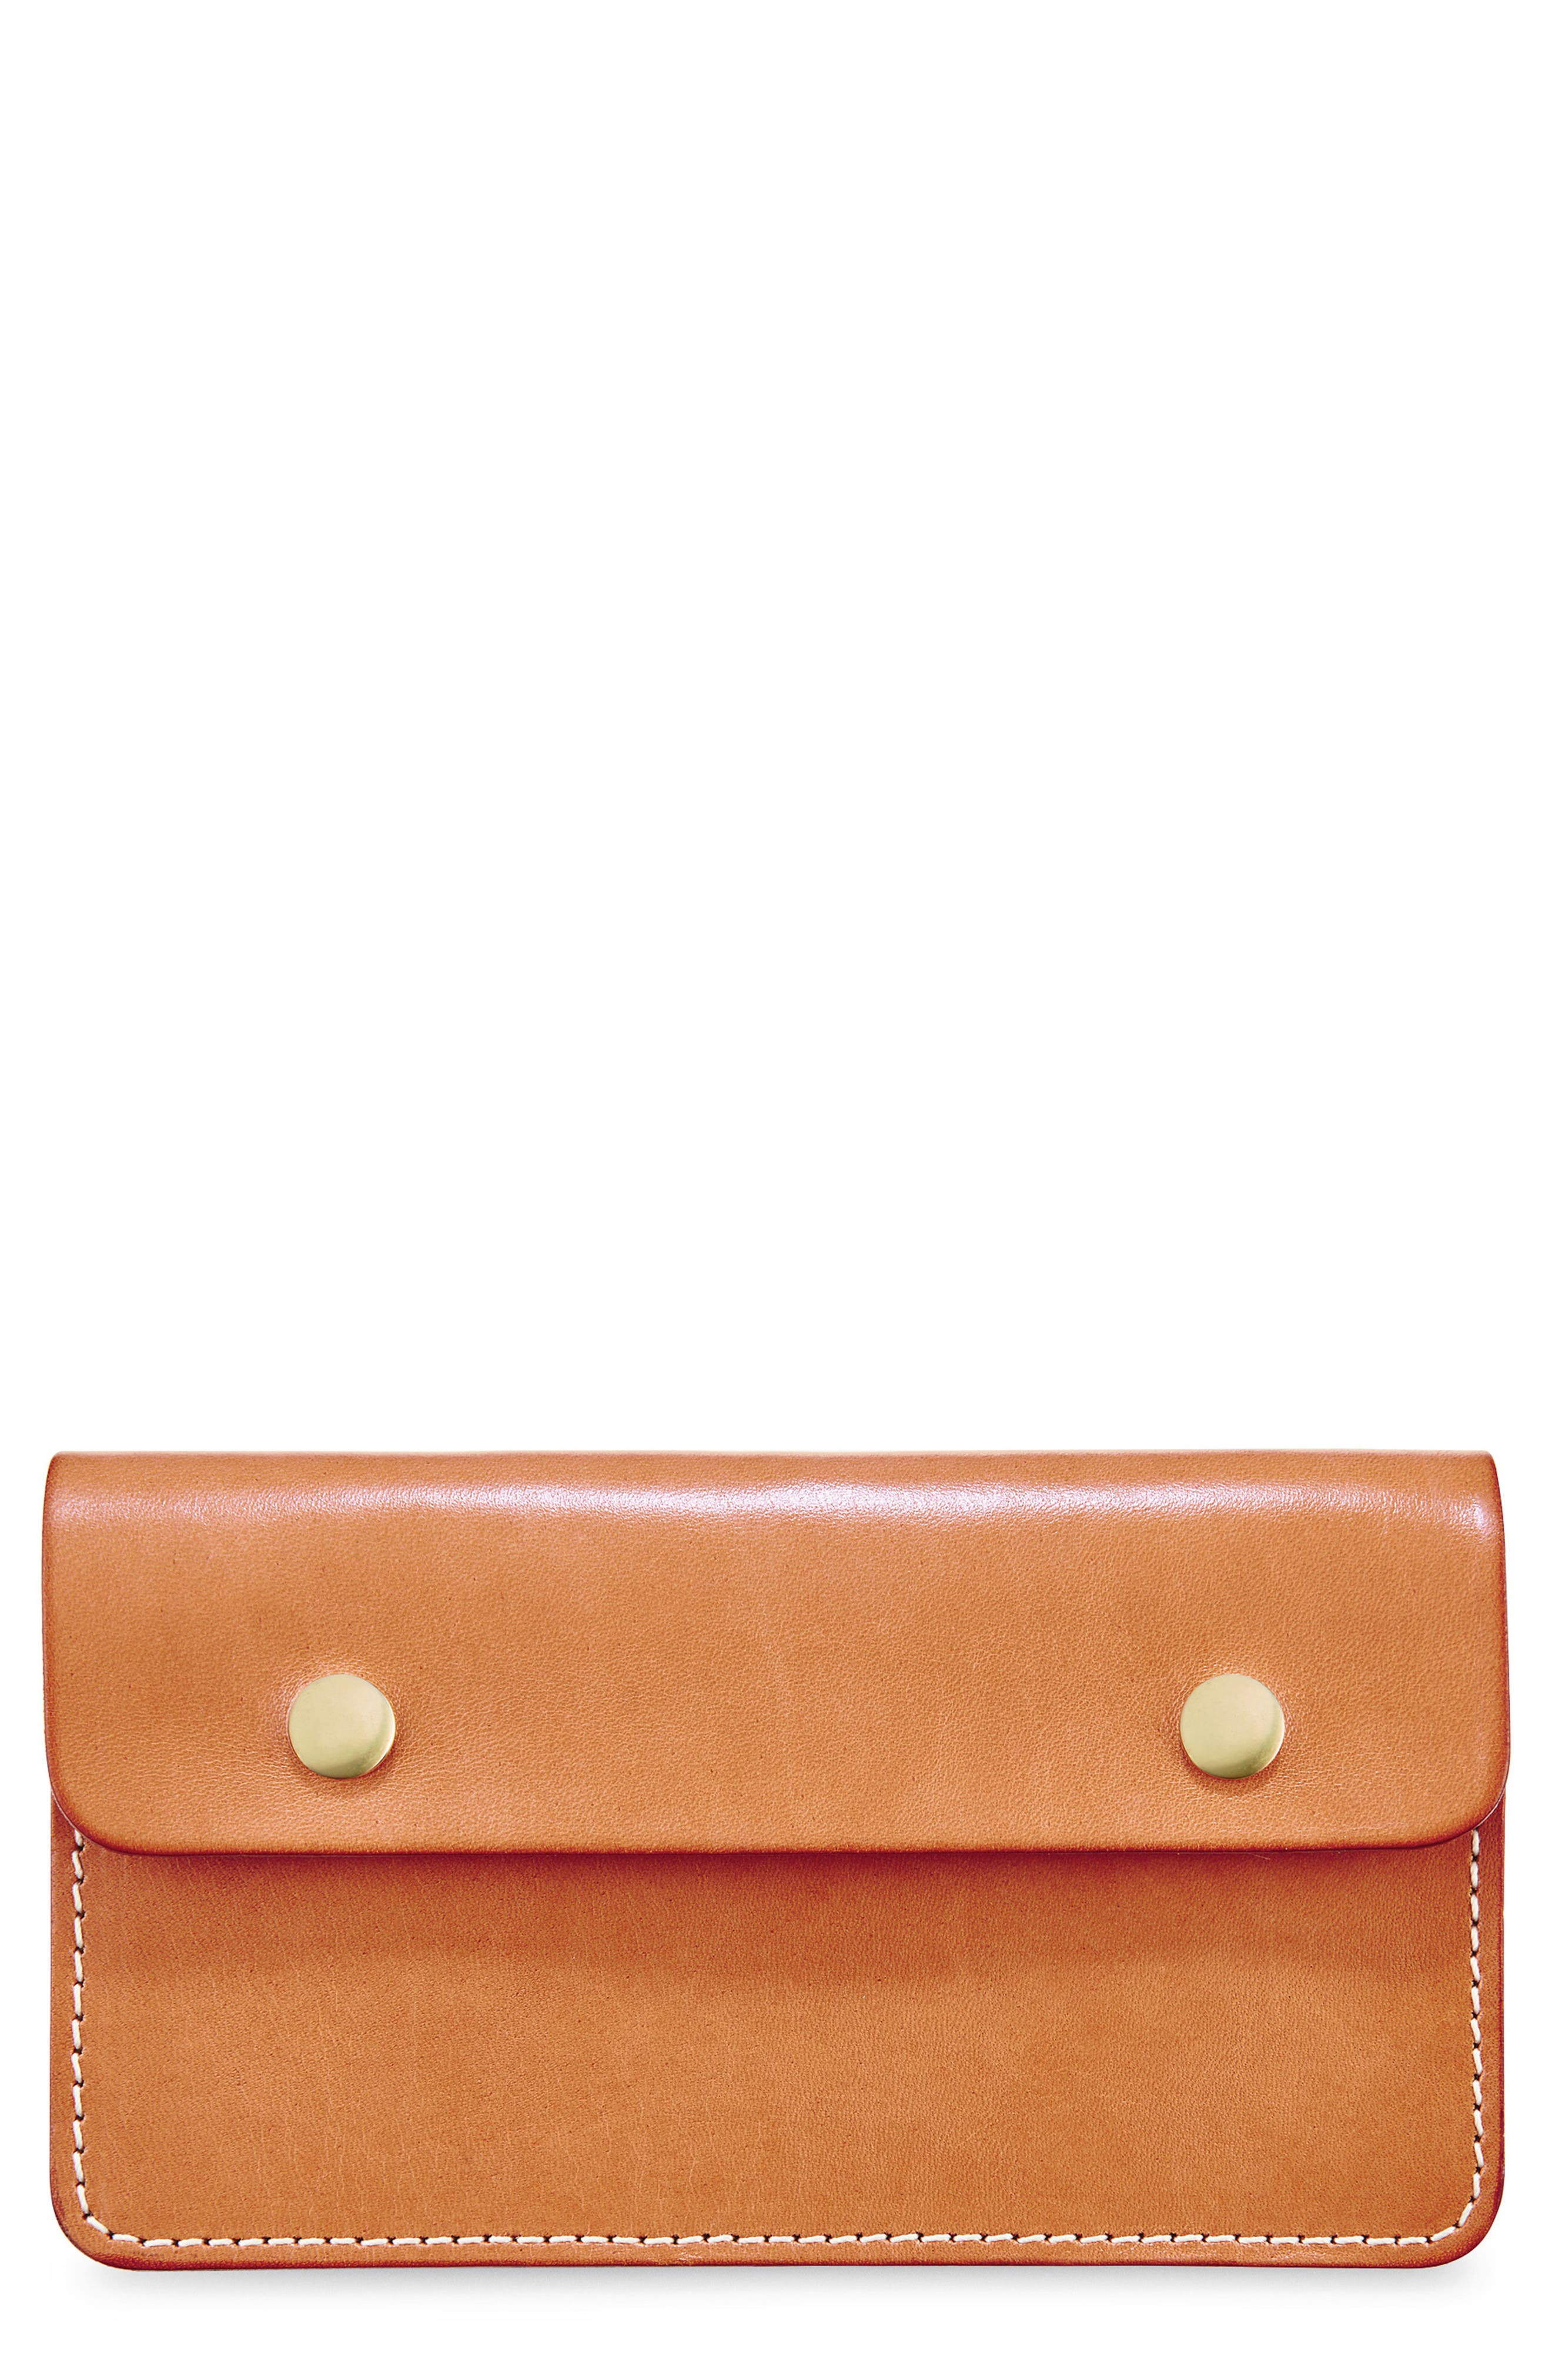 Leather Trucker Wallet,                         Main,                         color, Tanned Vegetable